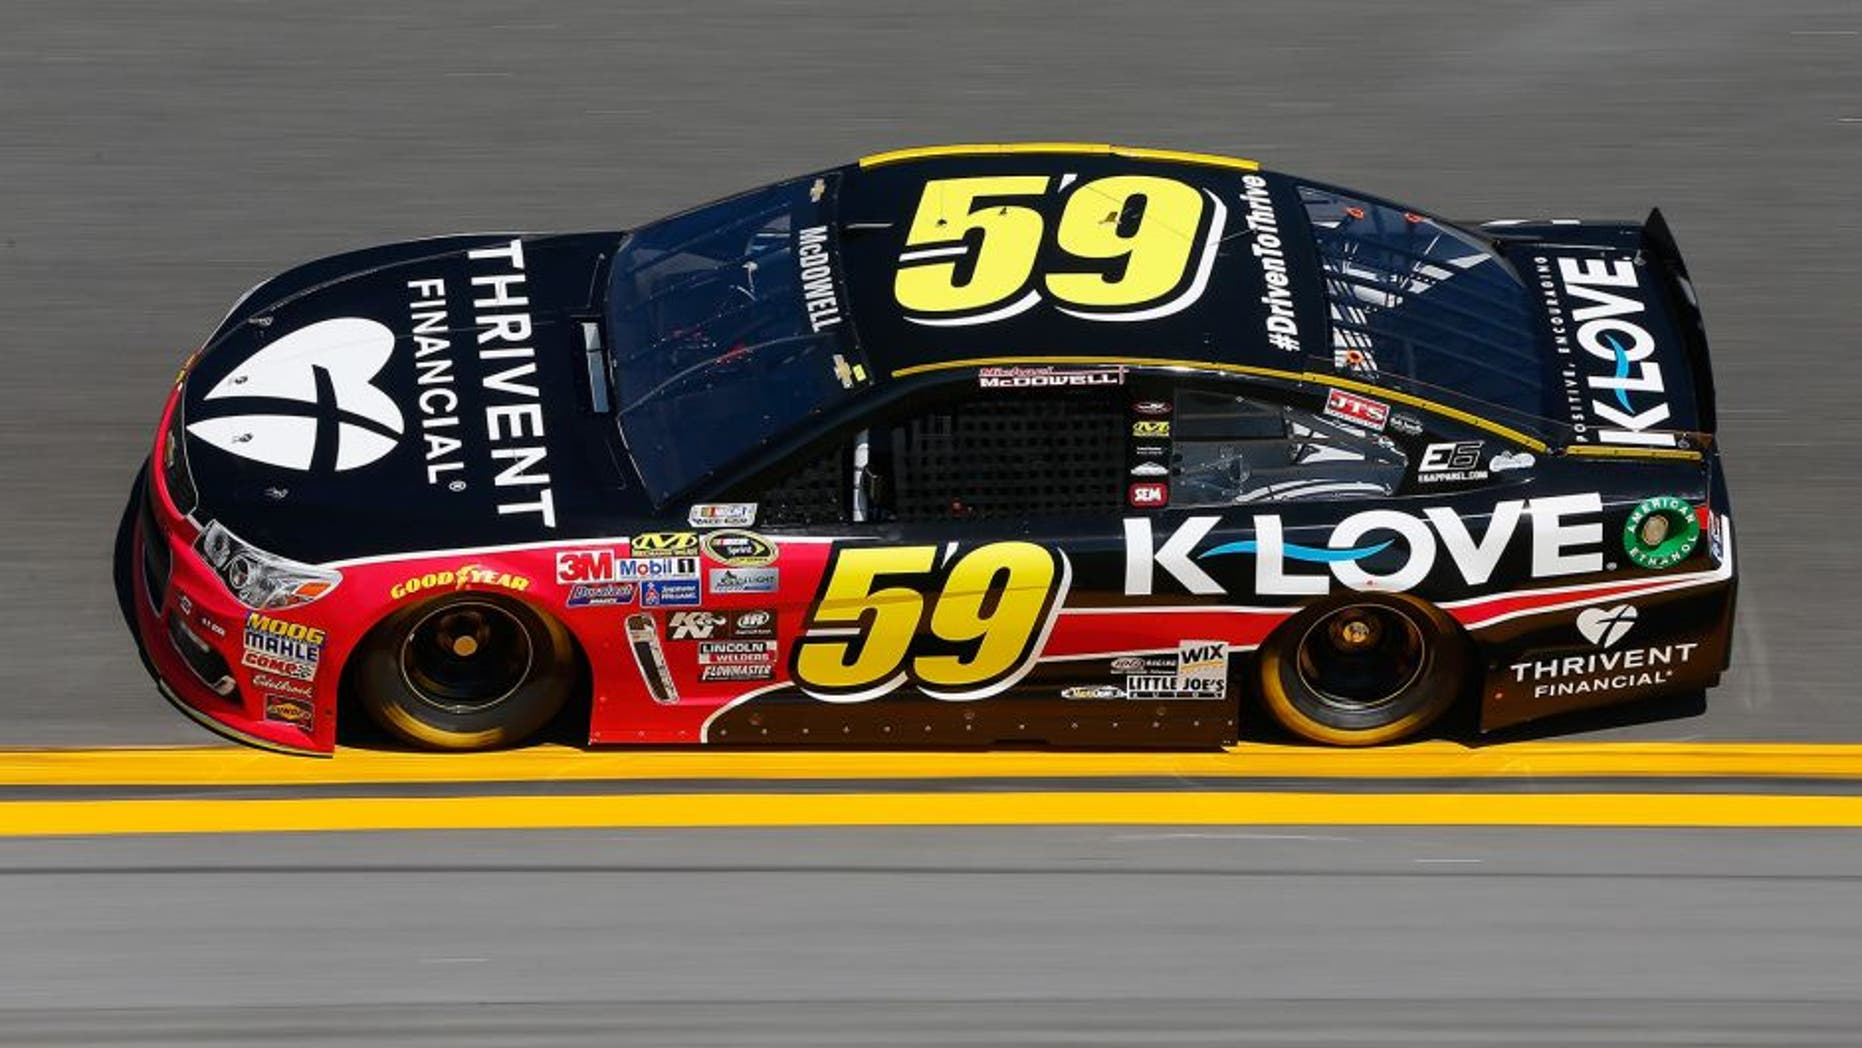 DAYTONA BEACH, FL - FEBRUARY 13: Michael McDowell, driver of the #59 Thrivent Financial Chevrolet, practices for the NASCAR Sprint Cup Series Daytona 500 at Daytona International Speedway on February 13, 2016 in Daytona Beach, Florida. (Photo by Jonathan Ferrey/NASCAR via Getty Images)